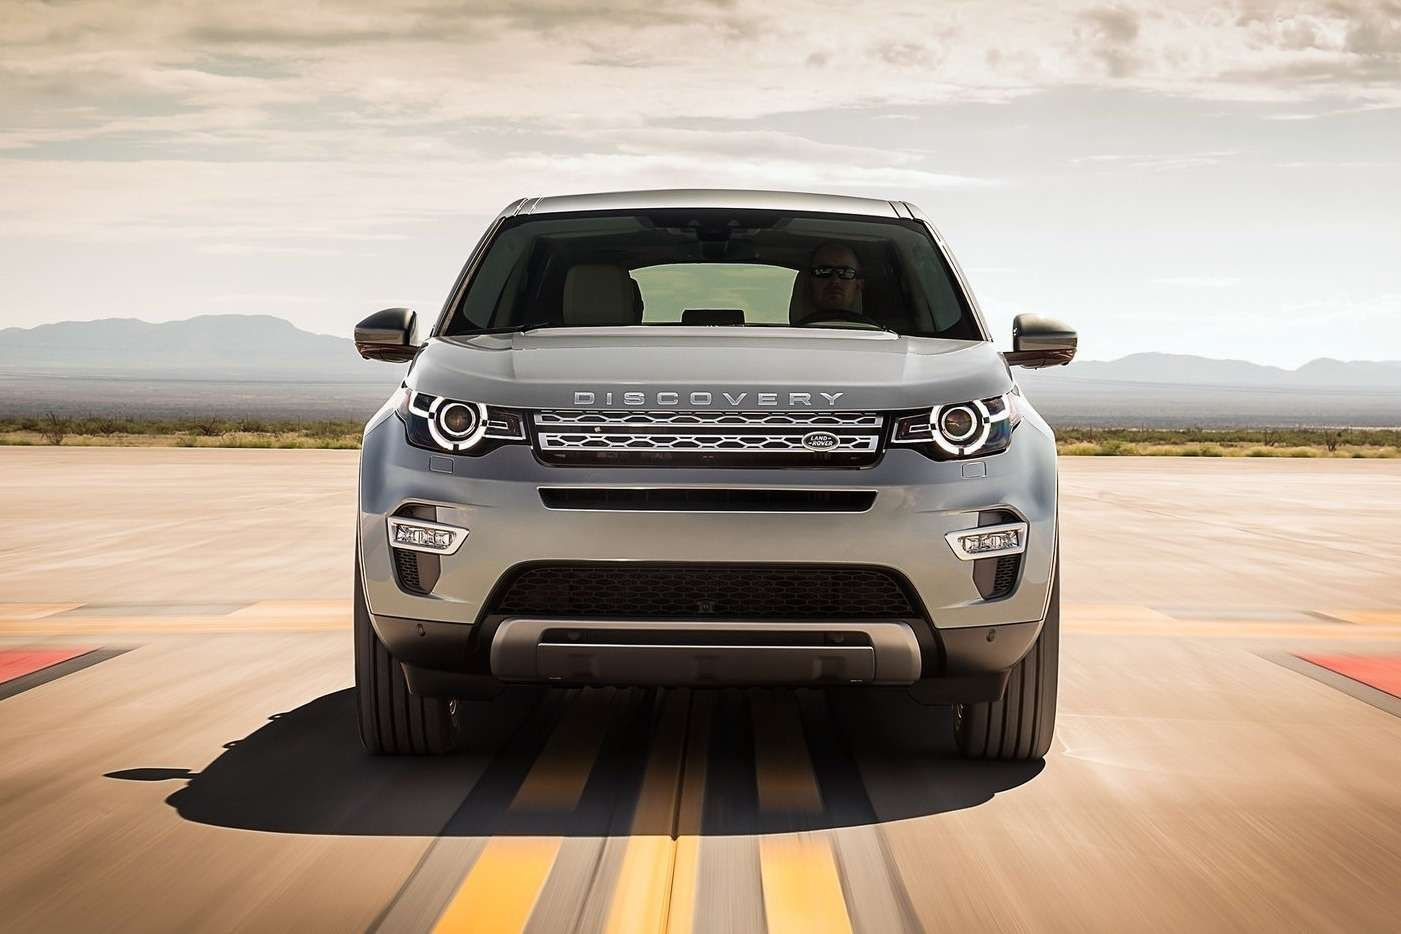 Land_Rover-Discovery_Sport_2015_1600x1200_wallpaper_1c